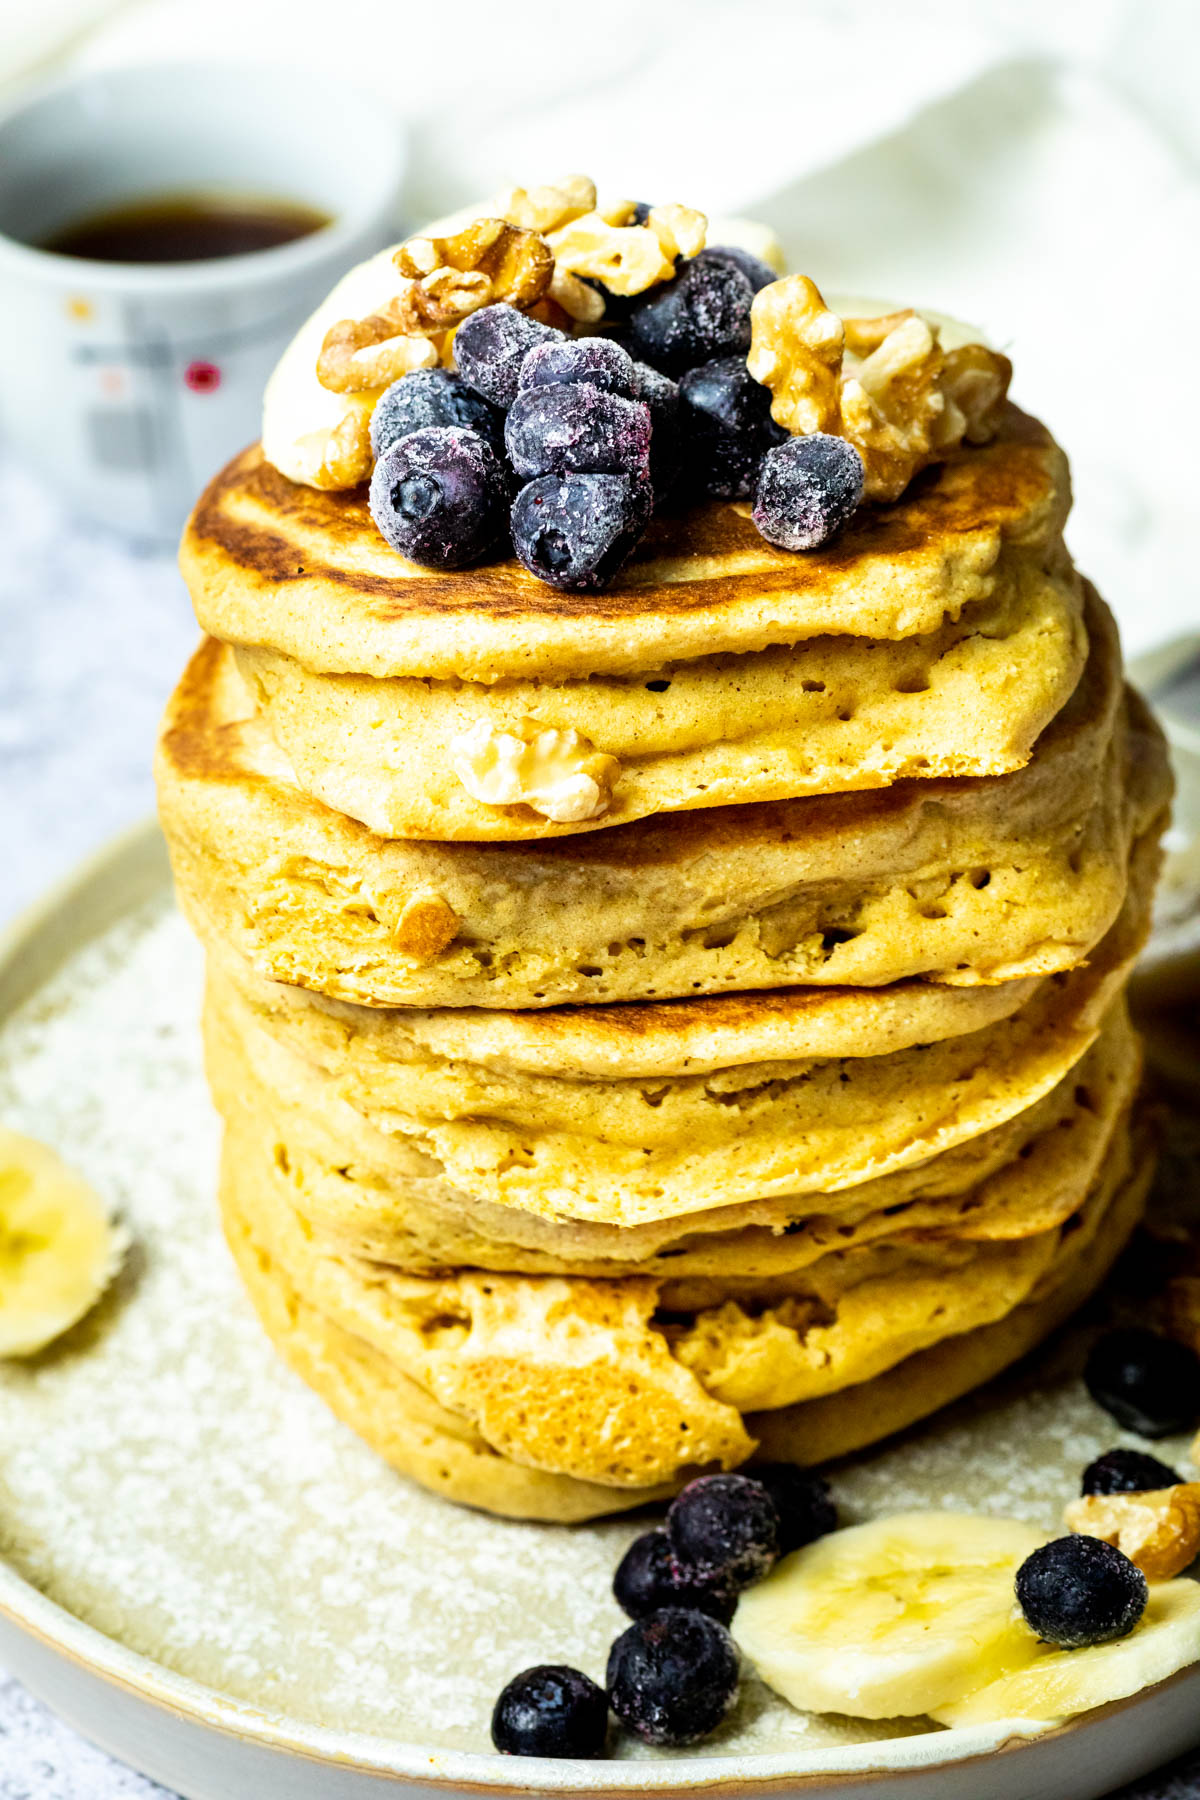 Close up of a Stack of vegan pancakes on a plate with blueberries, bananas and walnuts. And a cup of coffee in the background